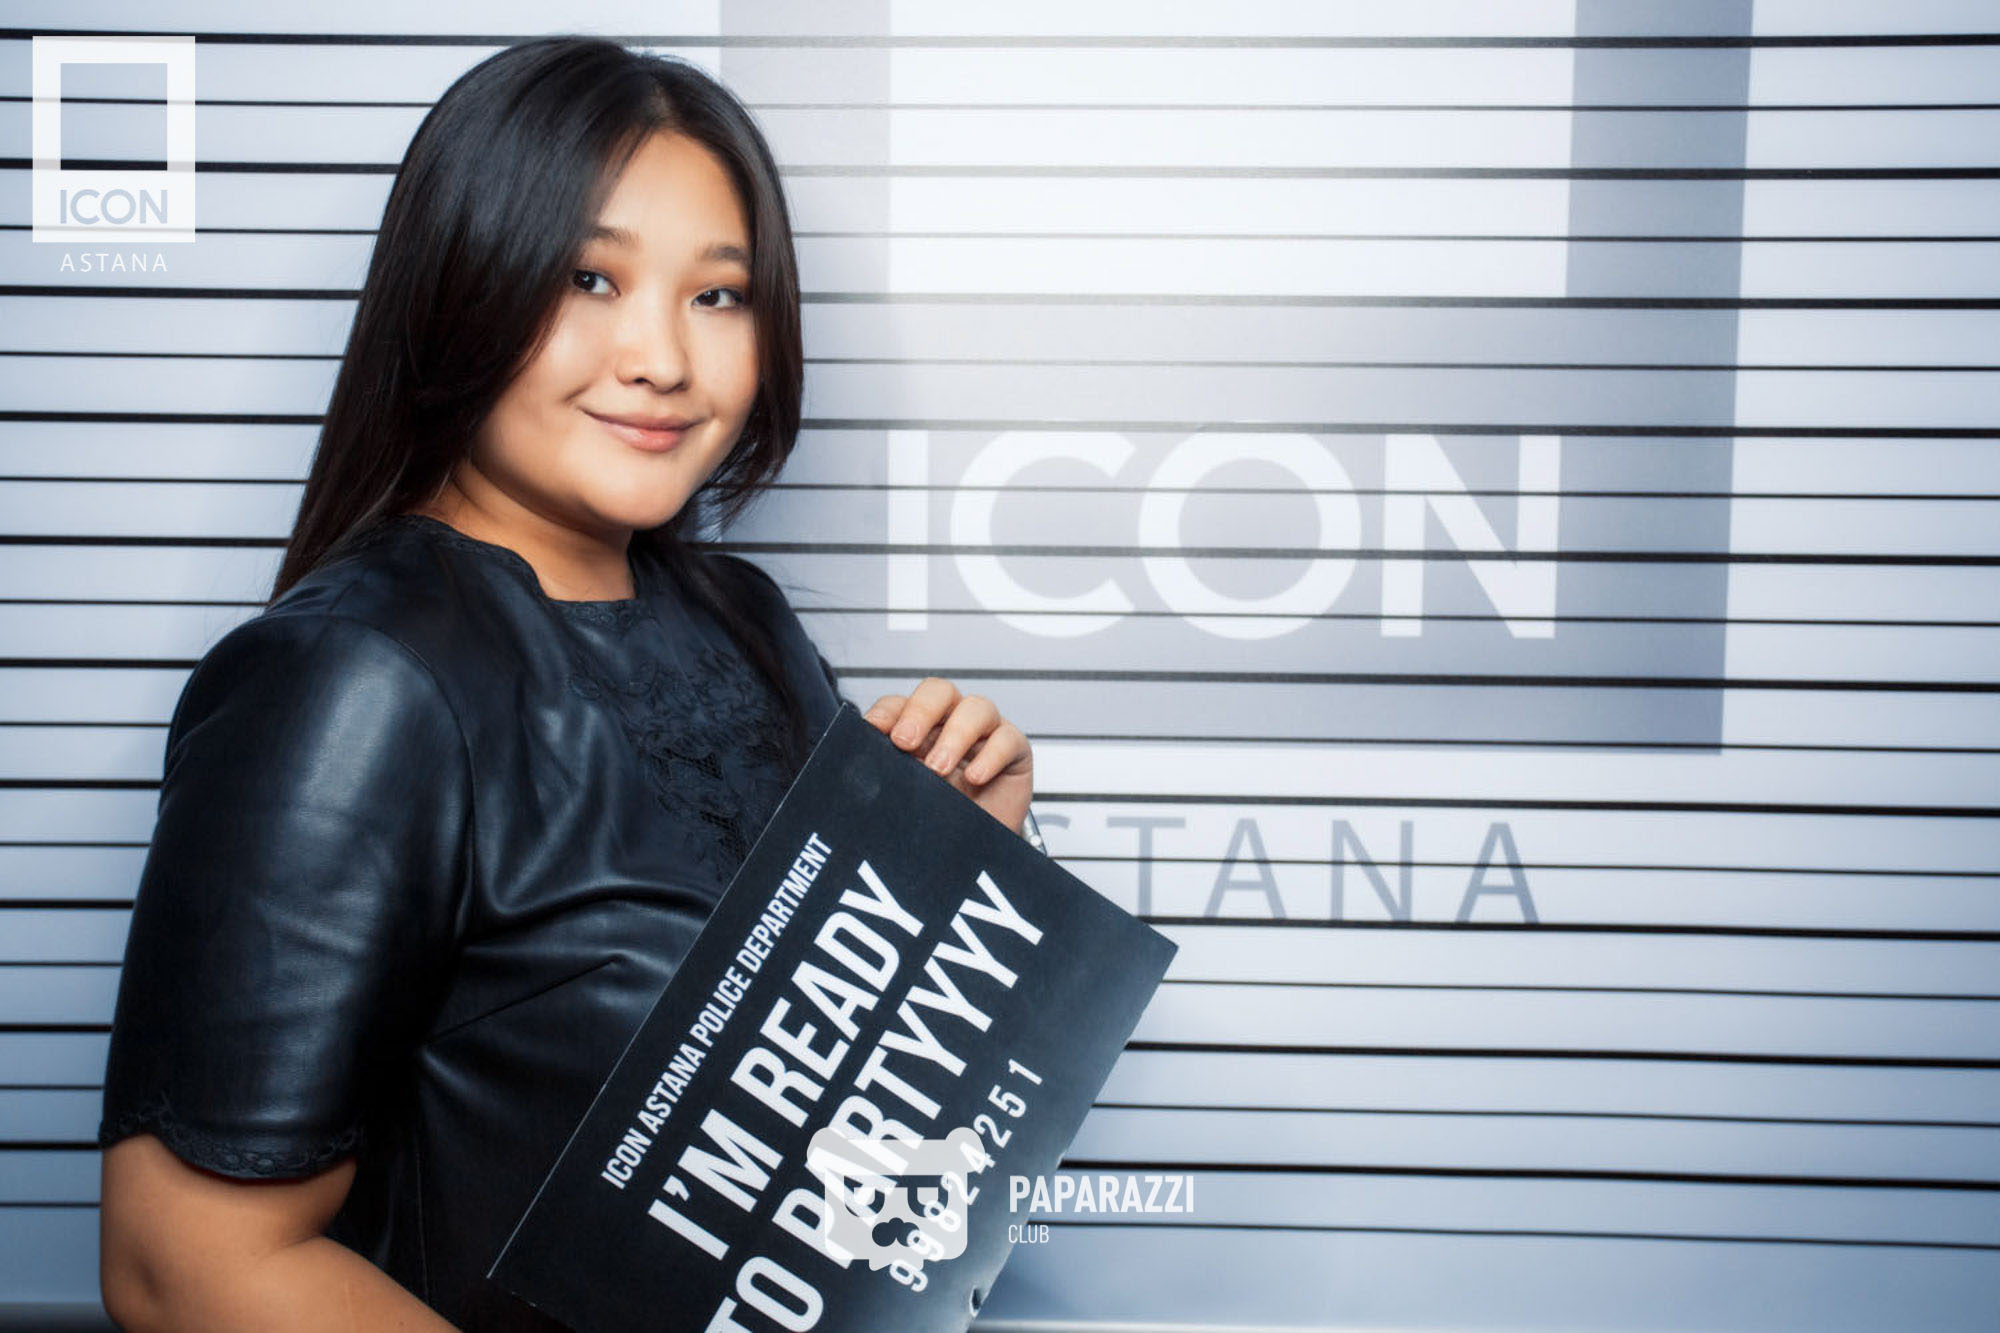 WELCOME TO THE BRONX • ICON CLUB ASTANA